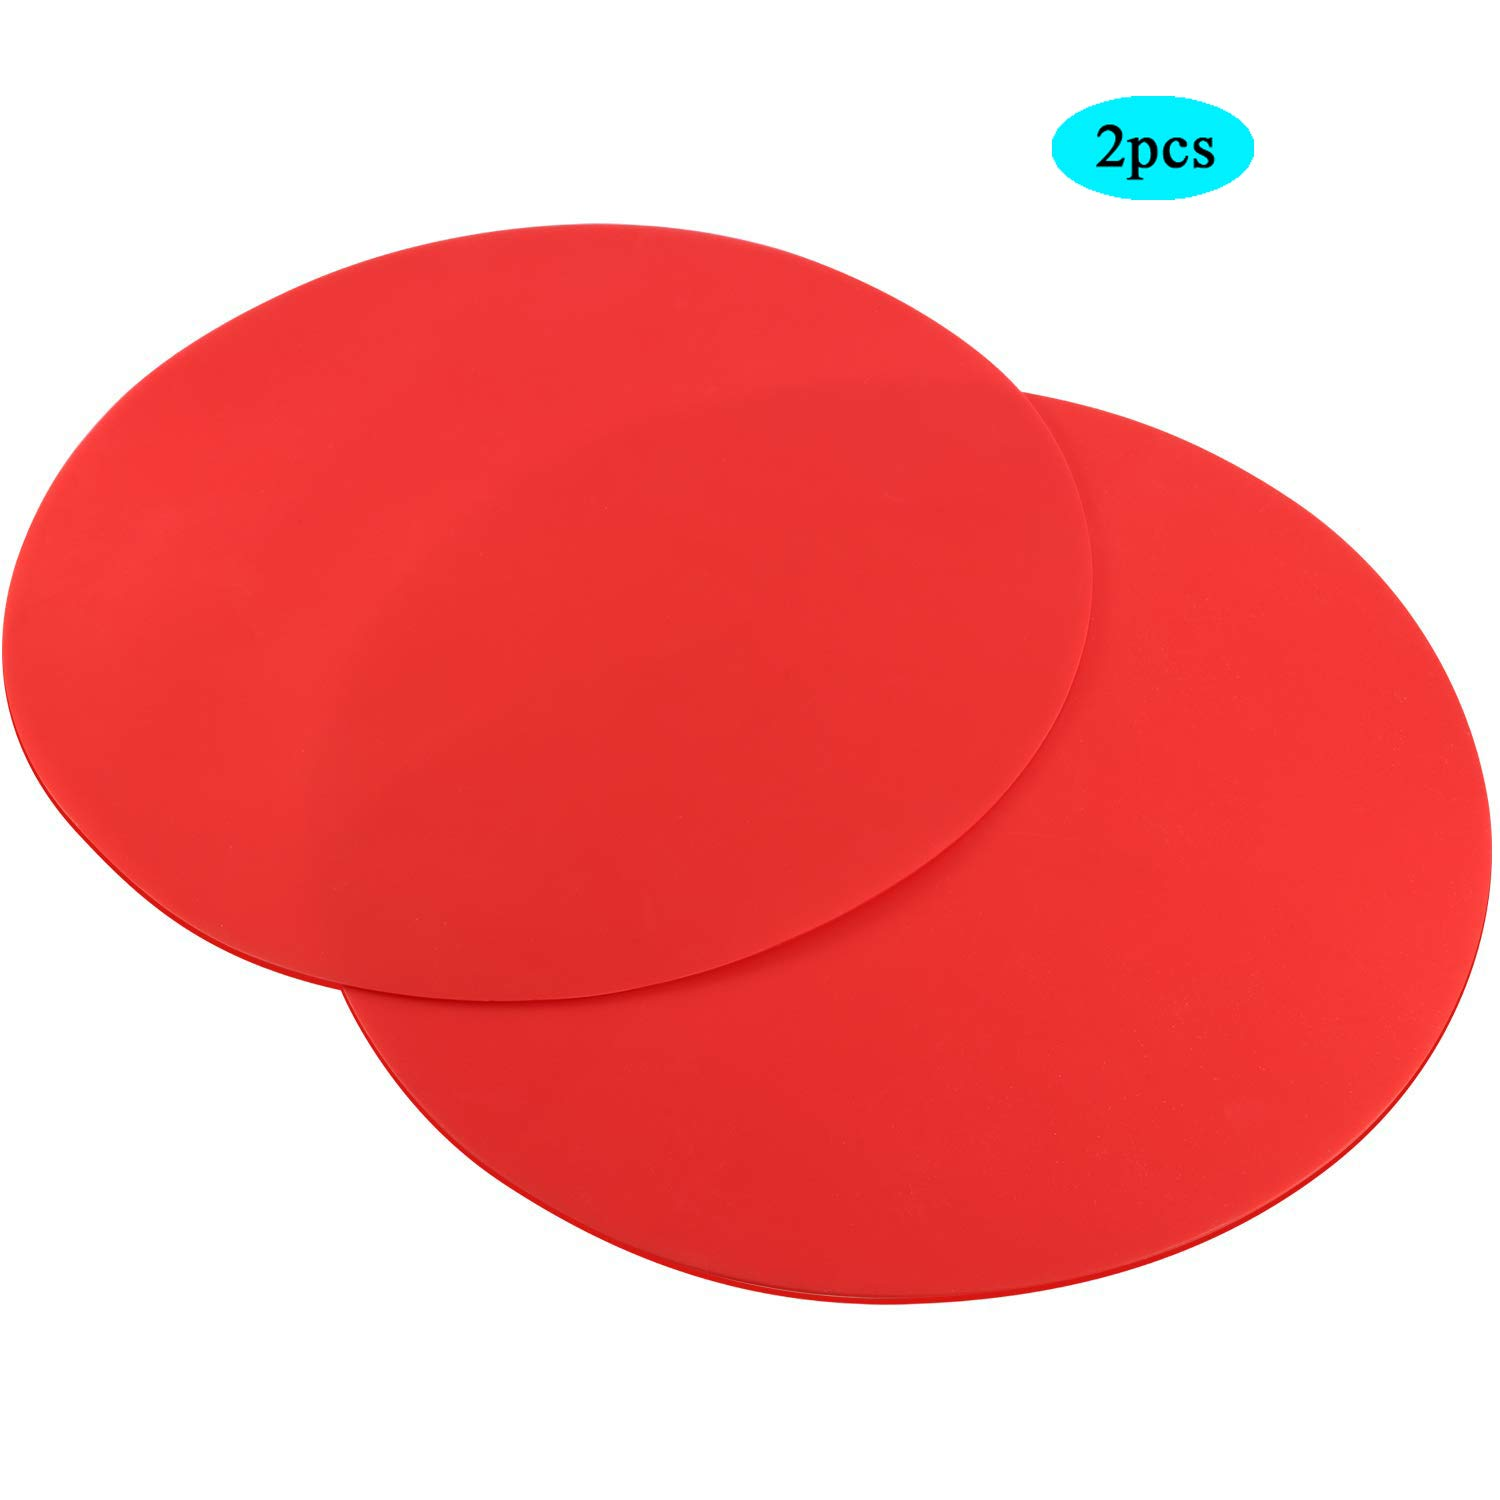 Time Roaming Silicone Microwave Mat Non Stick Oven Diameter 11.7 Inch 2 Pack